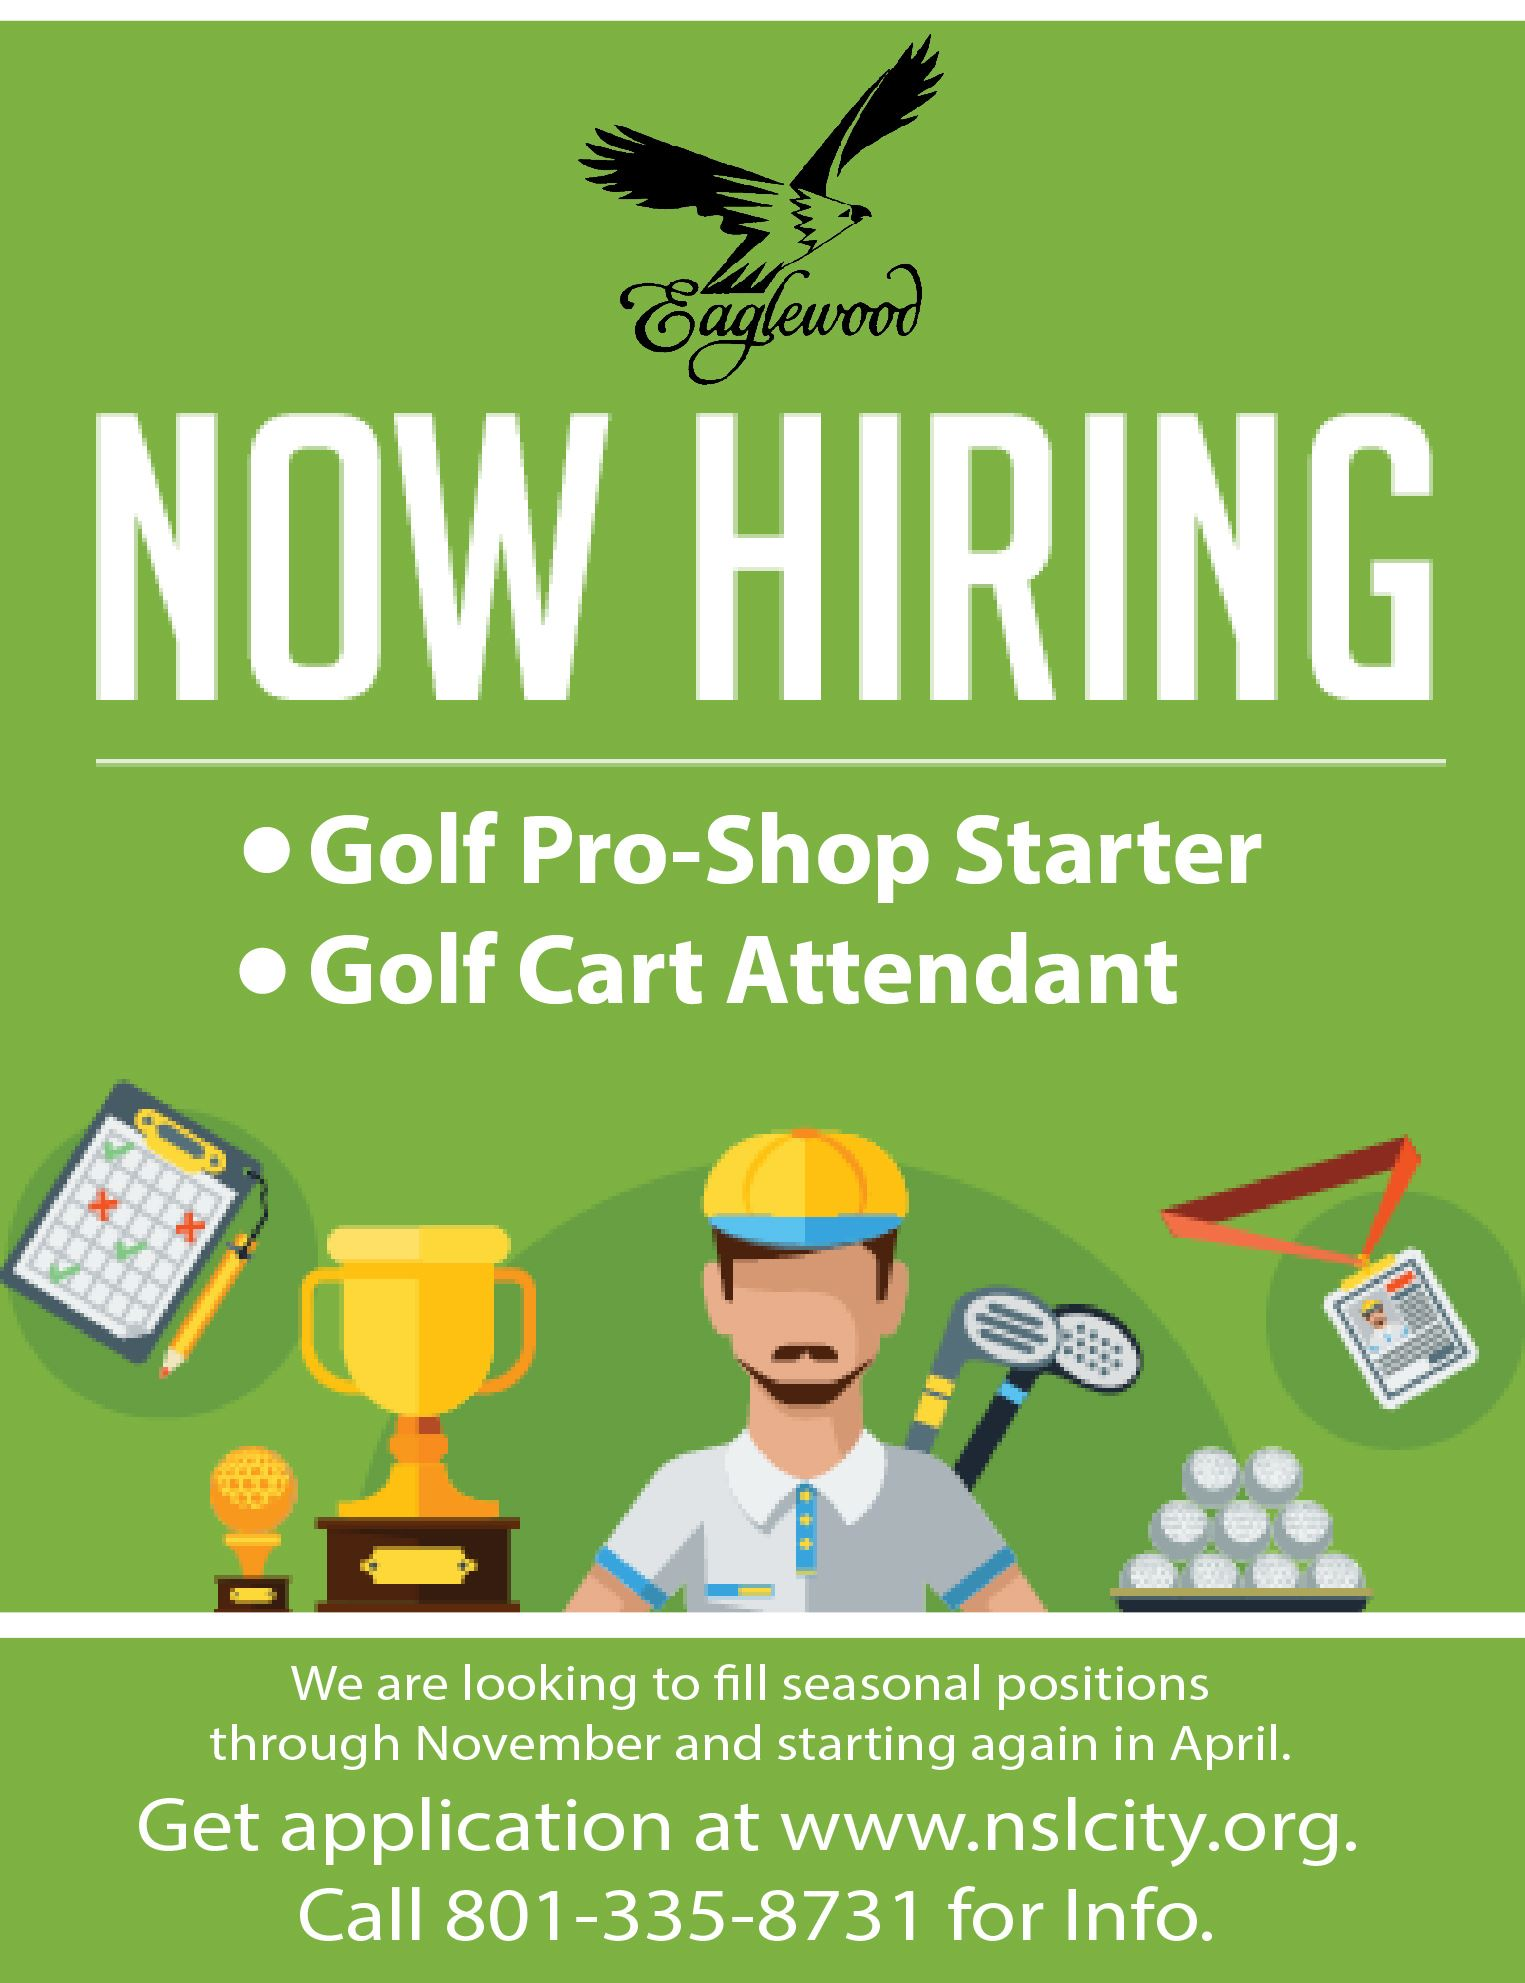 Now Hiring - Golf starter and cart attendant 8-15-18